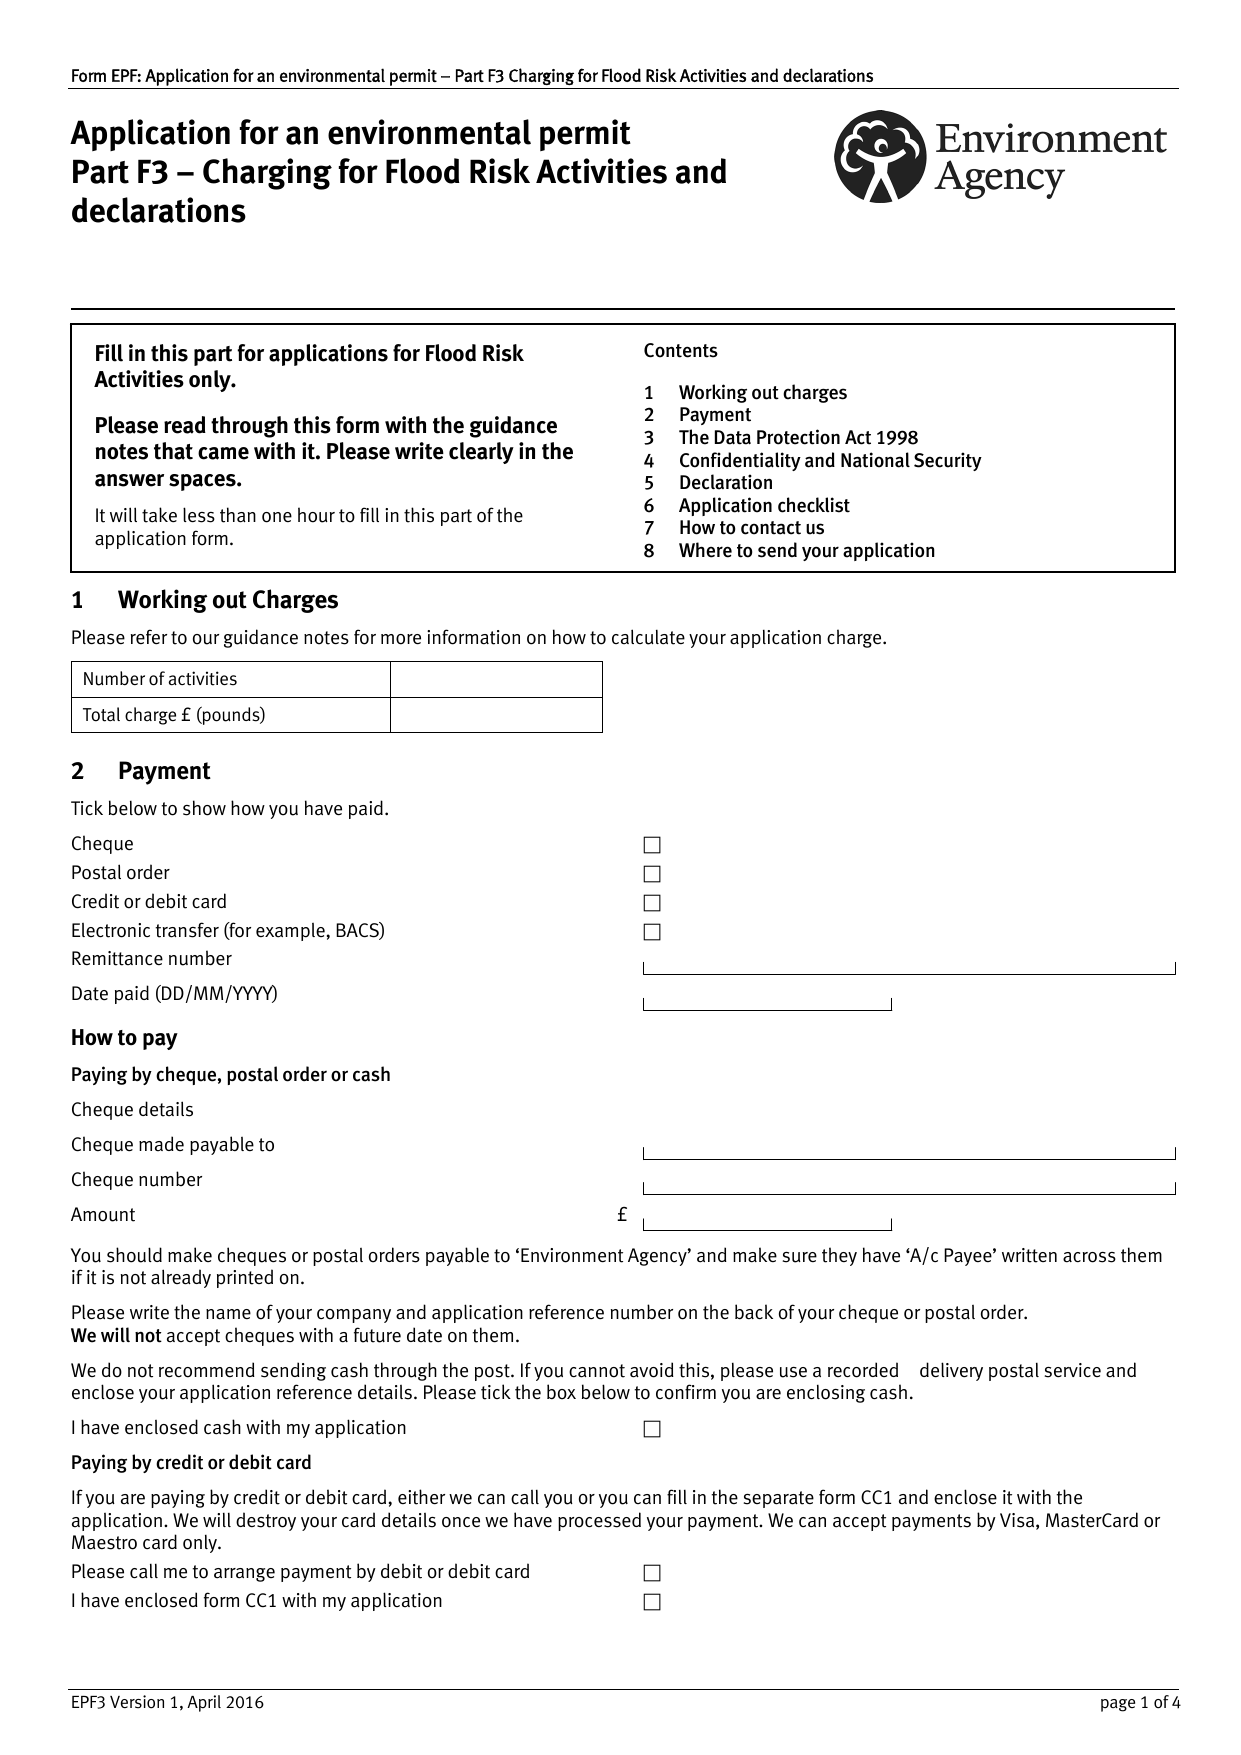 Attachment Application For An Environmental Permit Part F3: Charging For  Flood Risk Activities And Declarations